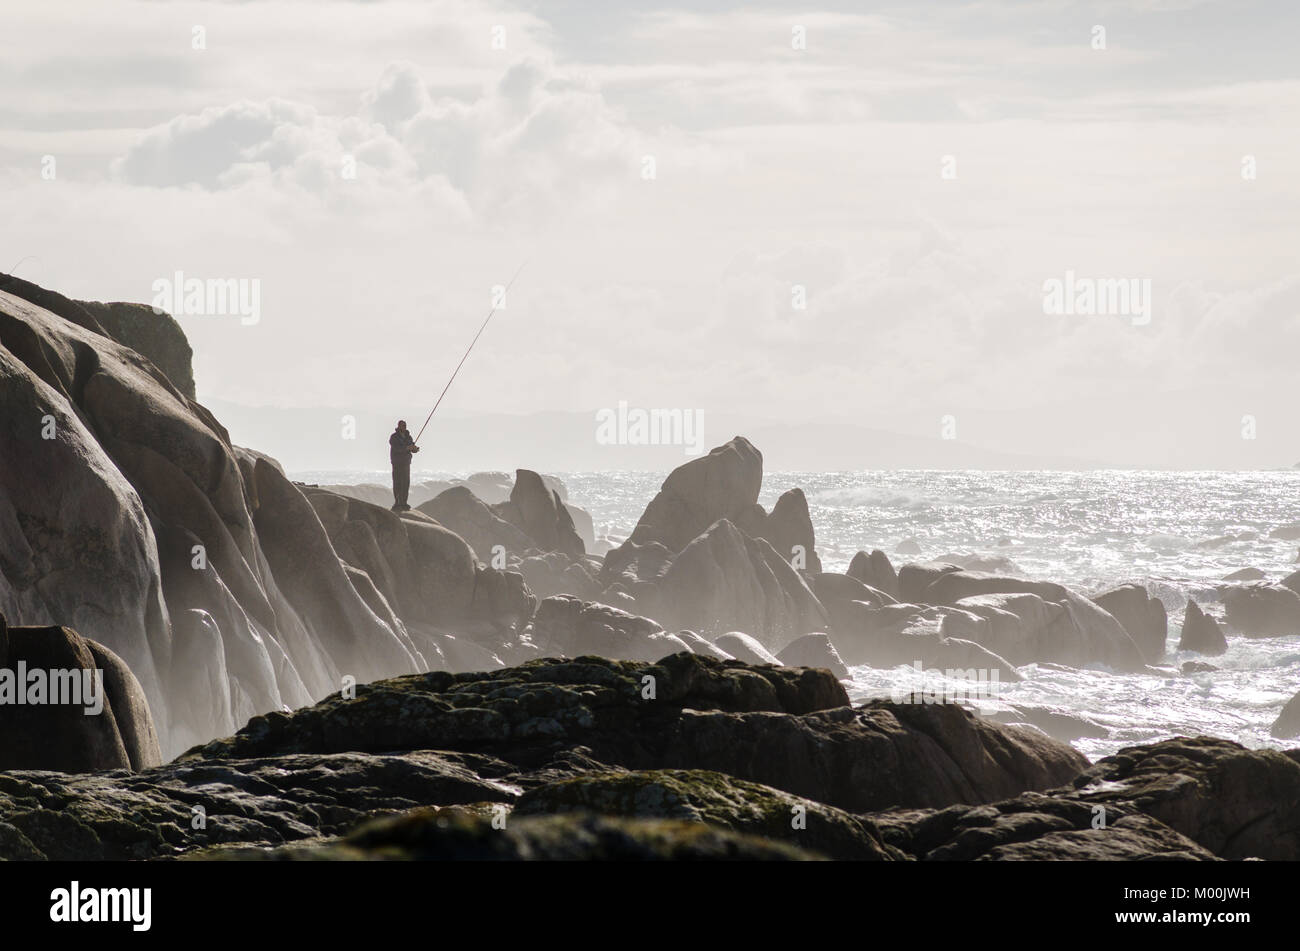 Fisherman fishing on coastline rocks. Brown tones - Stock Image